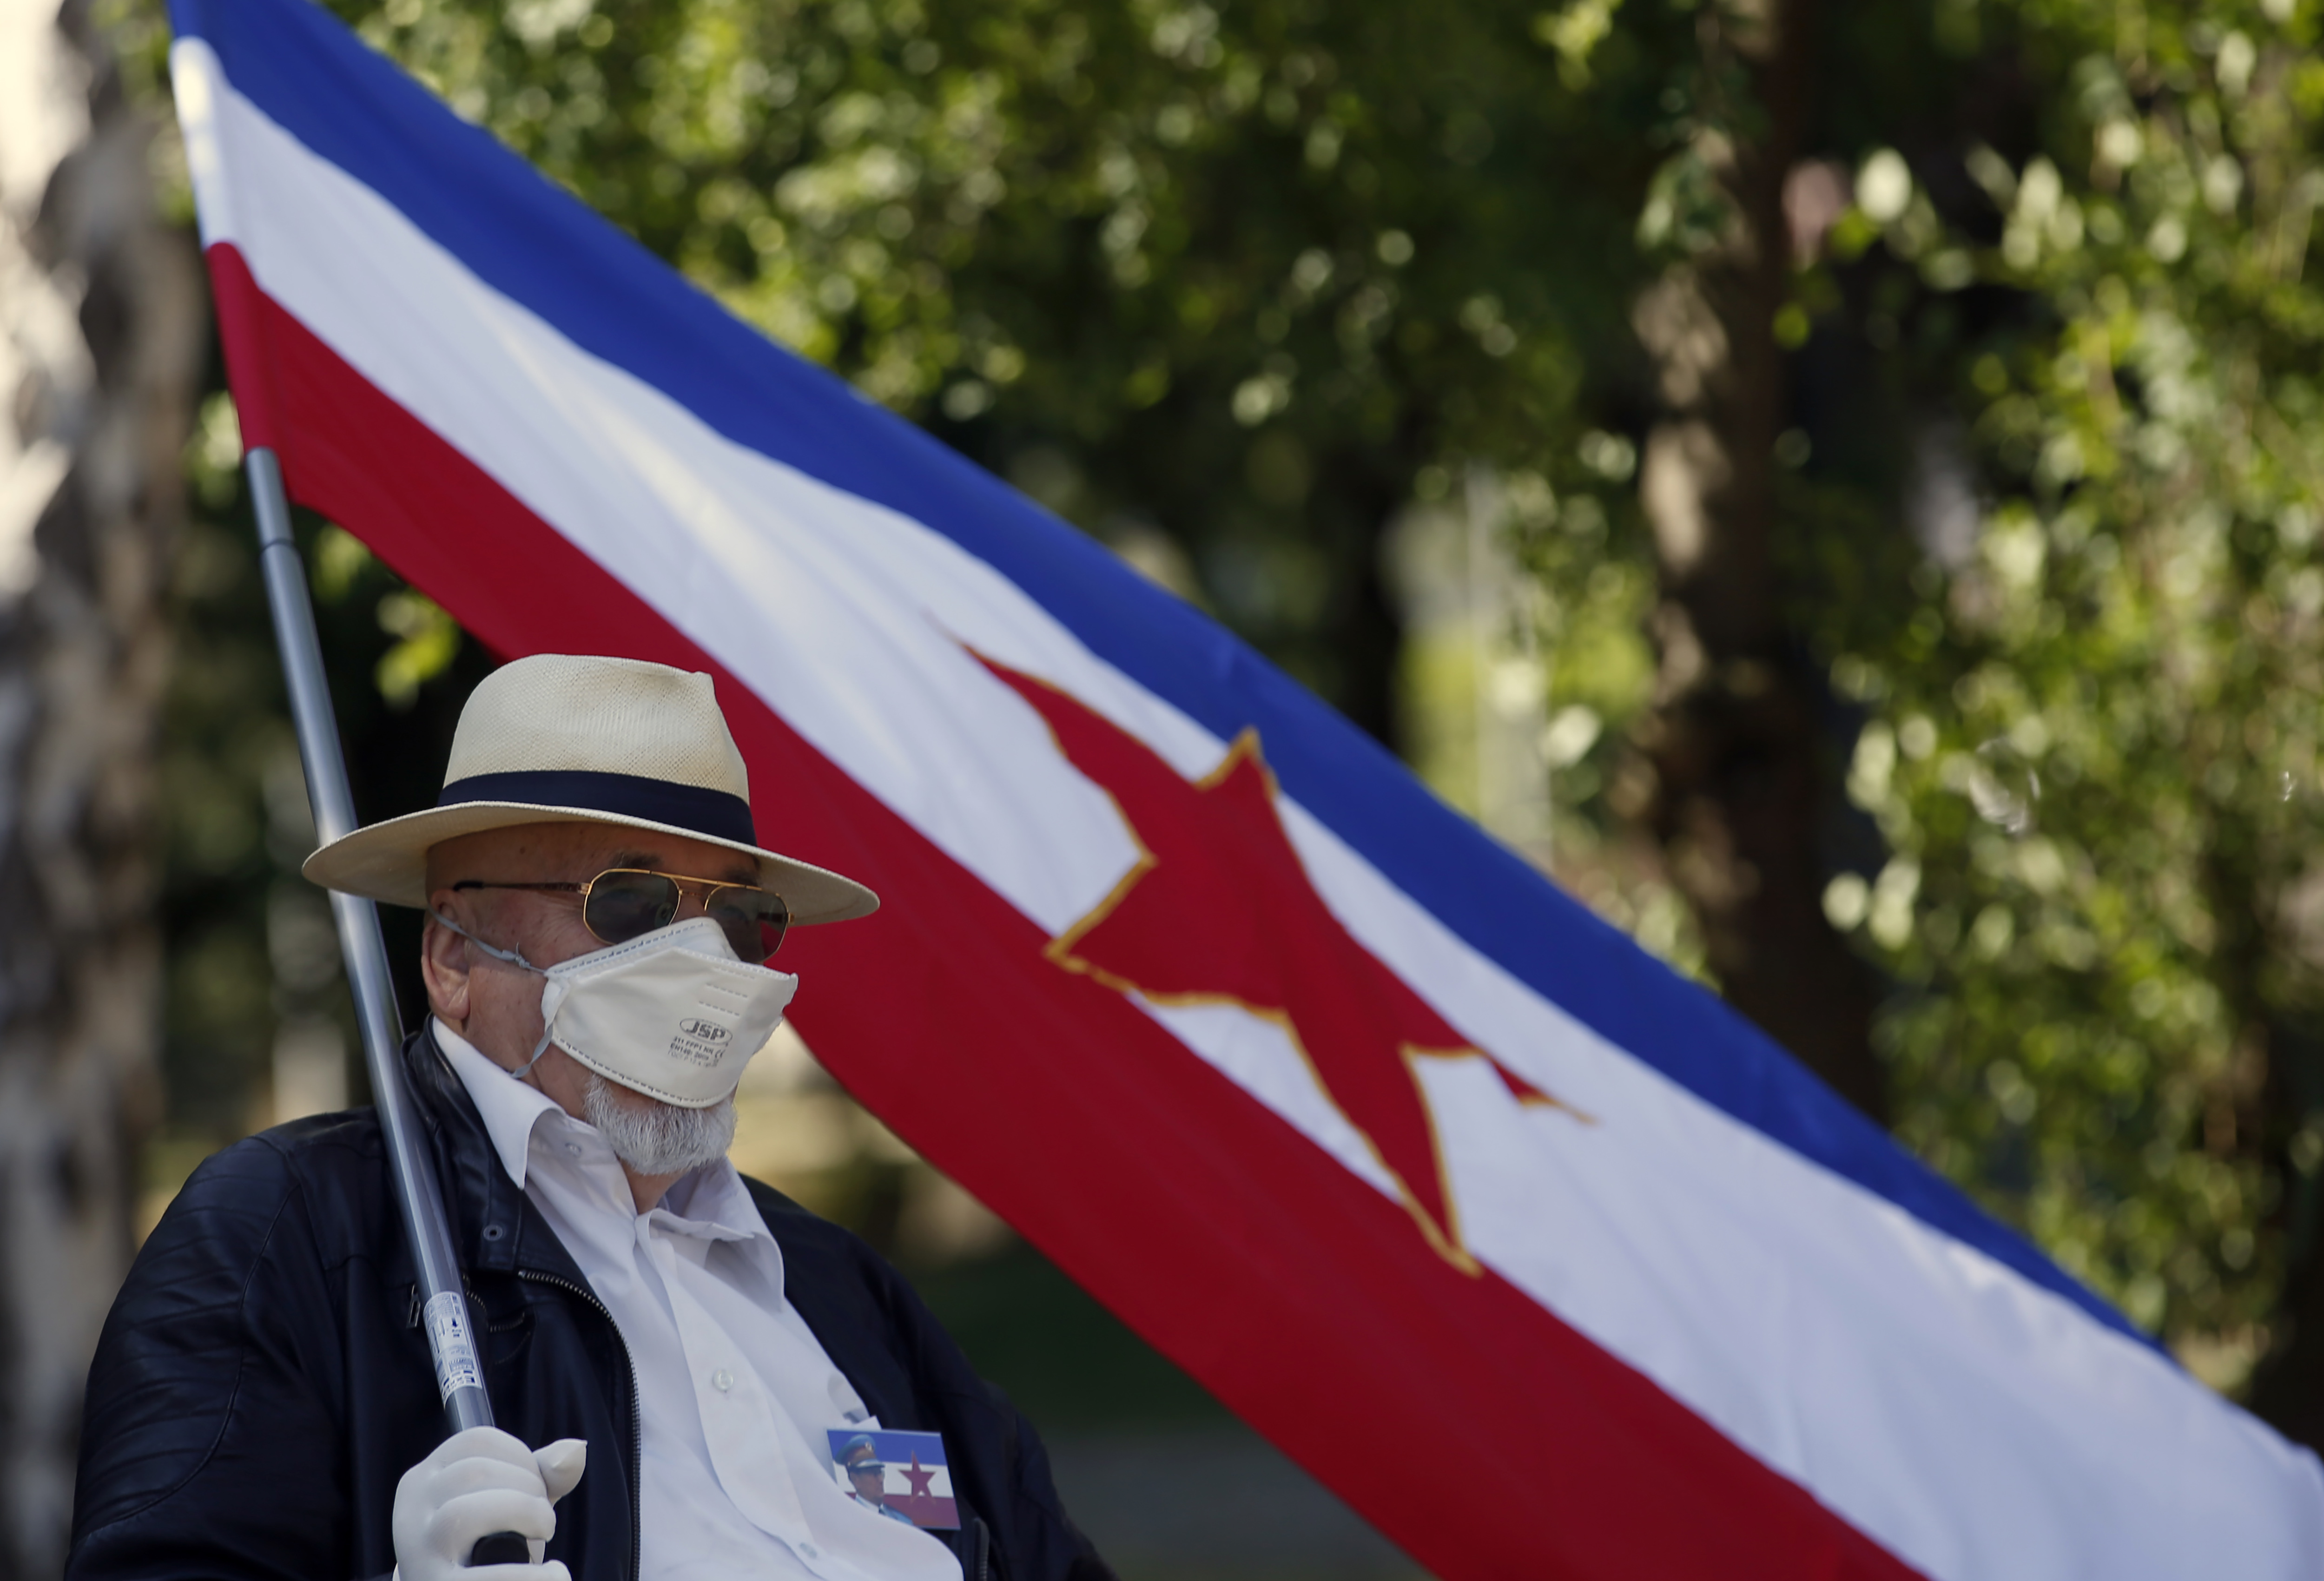 A supporter of the late Yugoslav communist president Josip Broz Tito wearing a mask to protect against coronavirus holds an old Yugoslav flag with the communist five-point star in front of memorial complex prior to a wreath laying ceremony in Belgrade, Serbia, Monday, May 25, 2020. People flocked to Tito's grave to mark the 128th anniversary of his birth. (AP Photo/Darko Vojinovic)